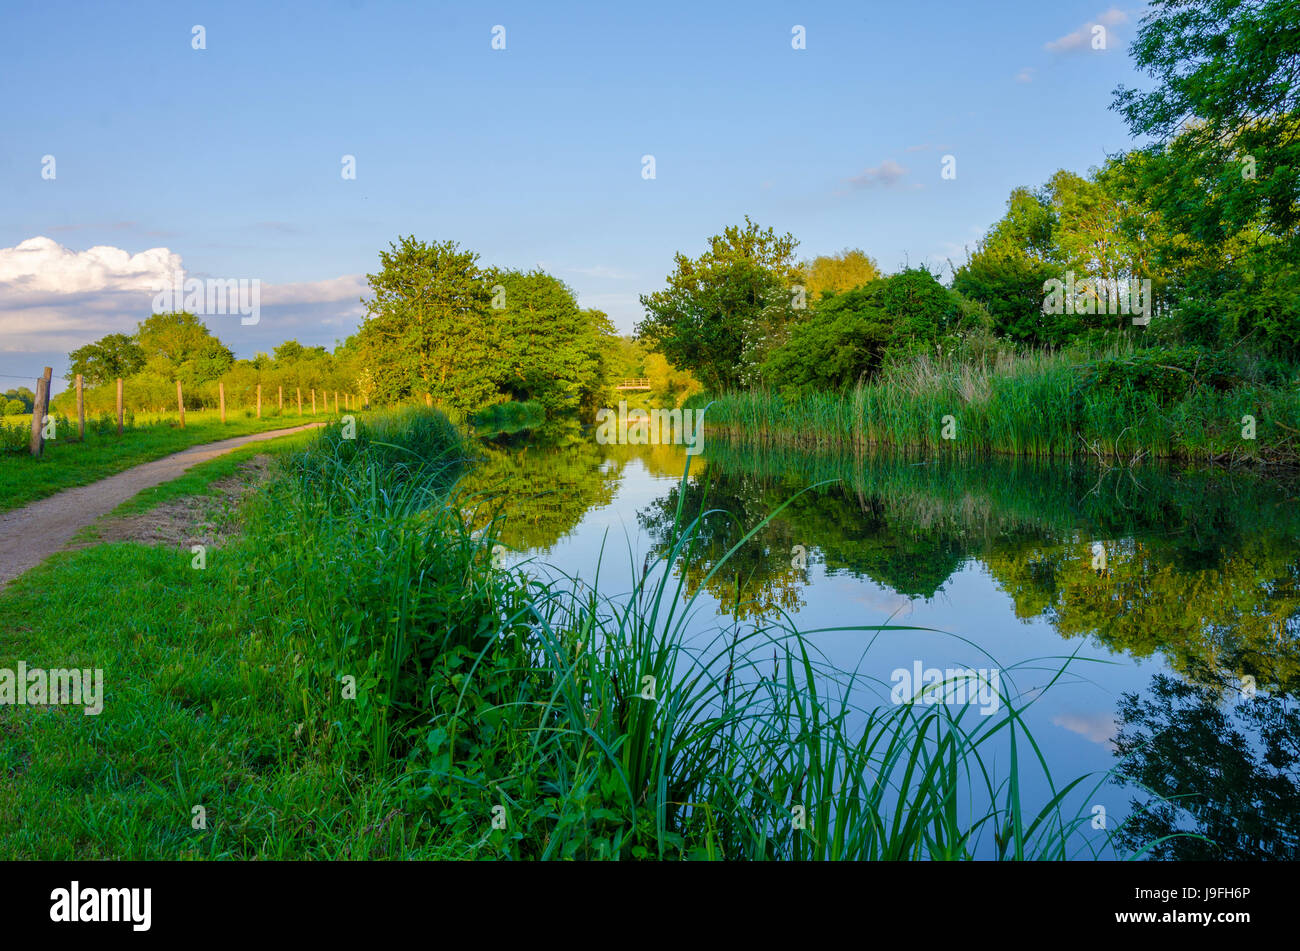 A view looking down The River Kennet at Reading, Berkshire during the late evening. - Stock Image